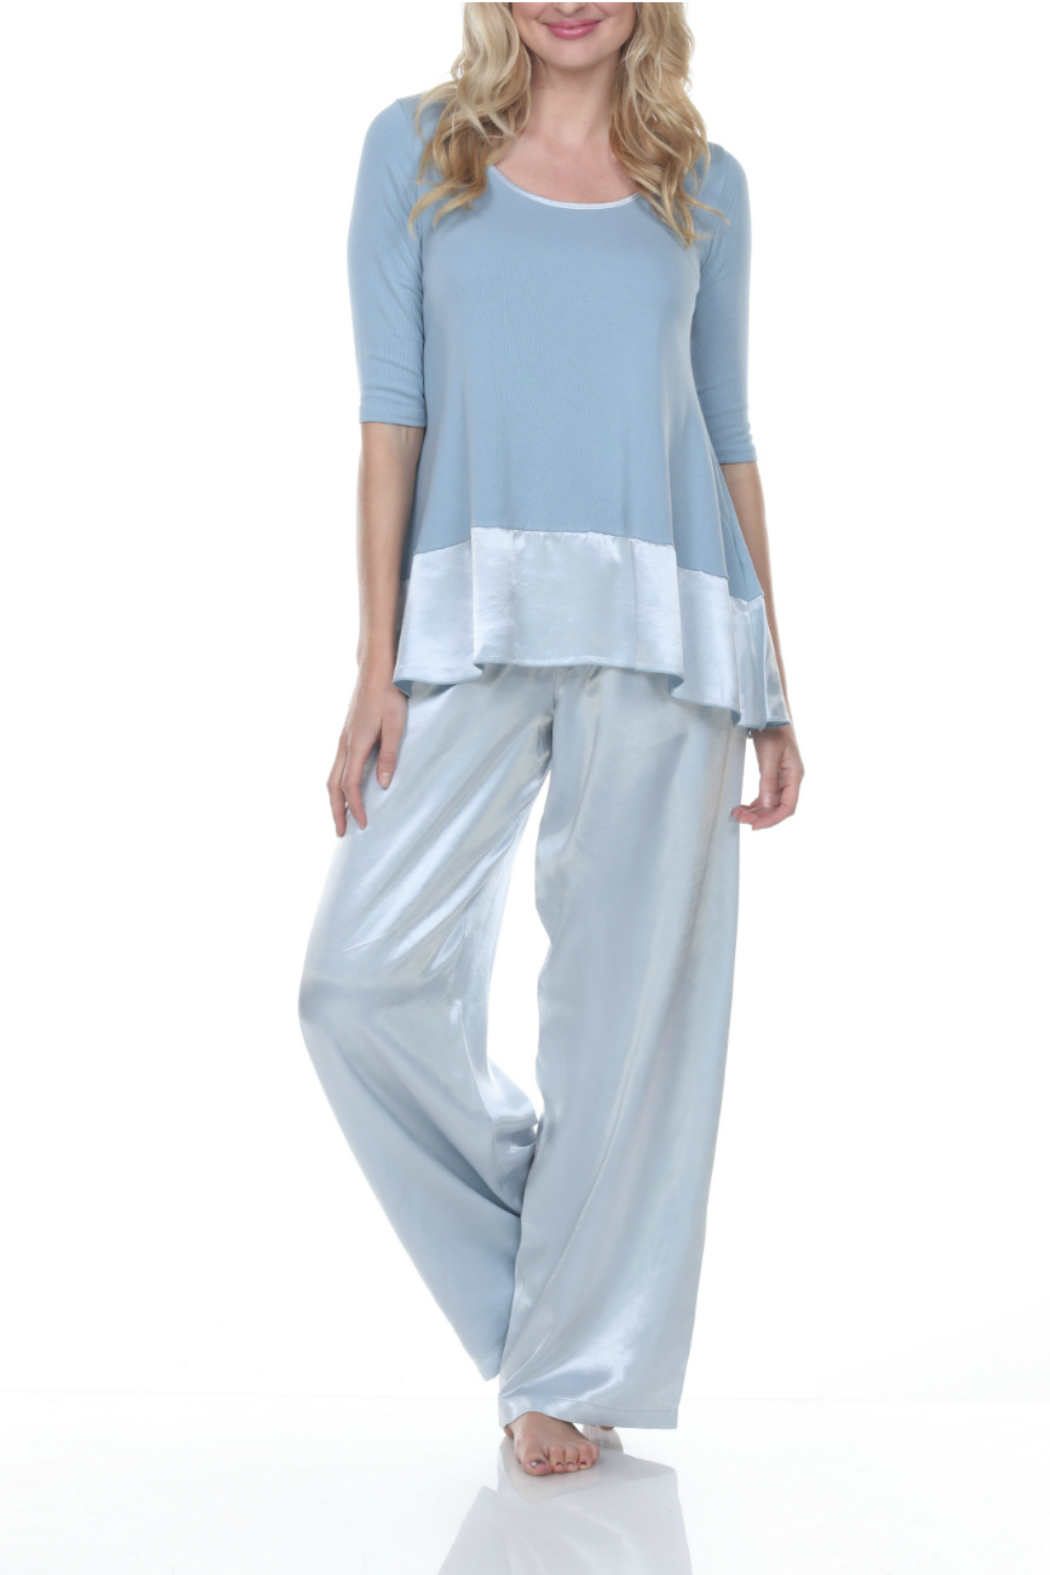 PJHARLOW Rib Knit 3/4 Sleeve Swing Top With Satin Trim - Main Image